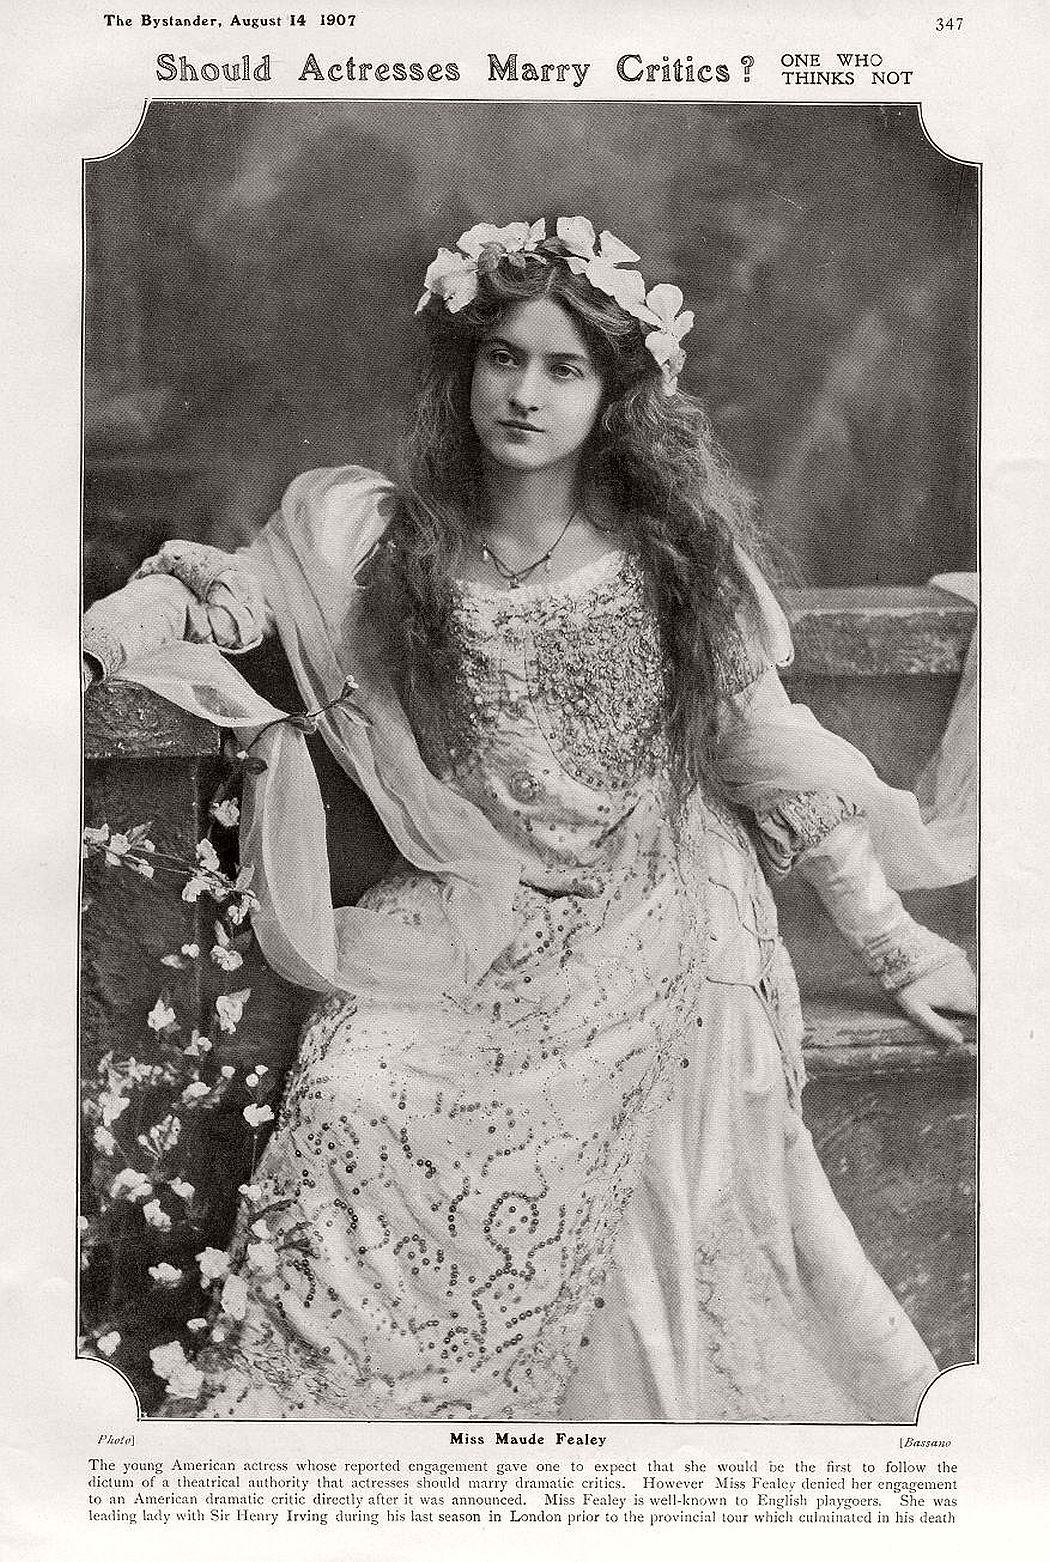 vintage-postcard-of-actress-miss-maude-fealy-1900s-early-xx-century-10